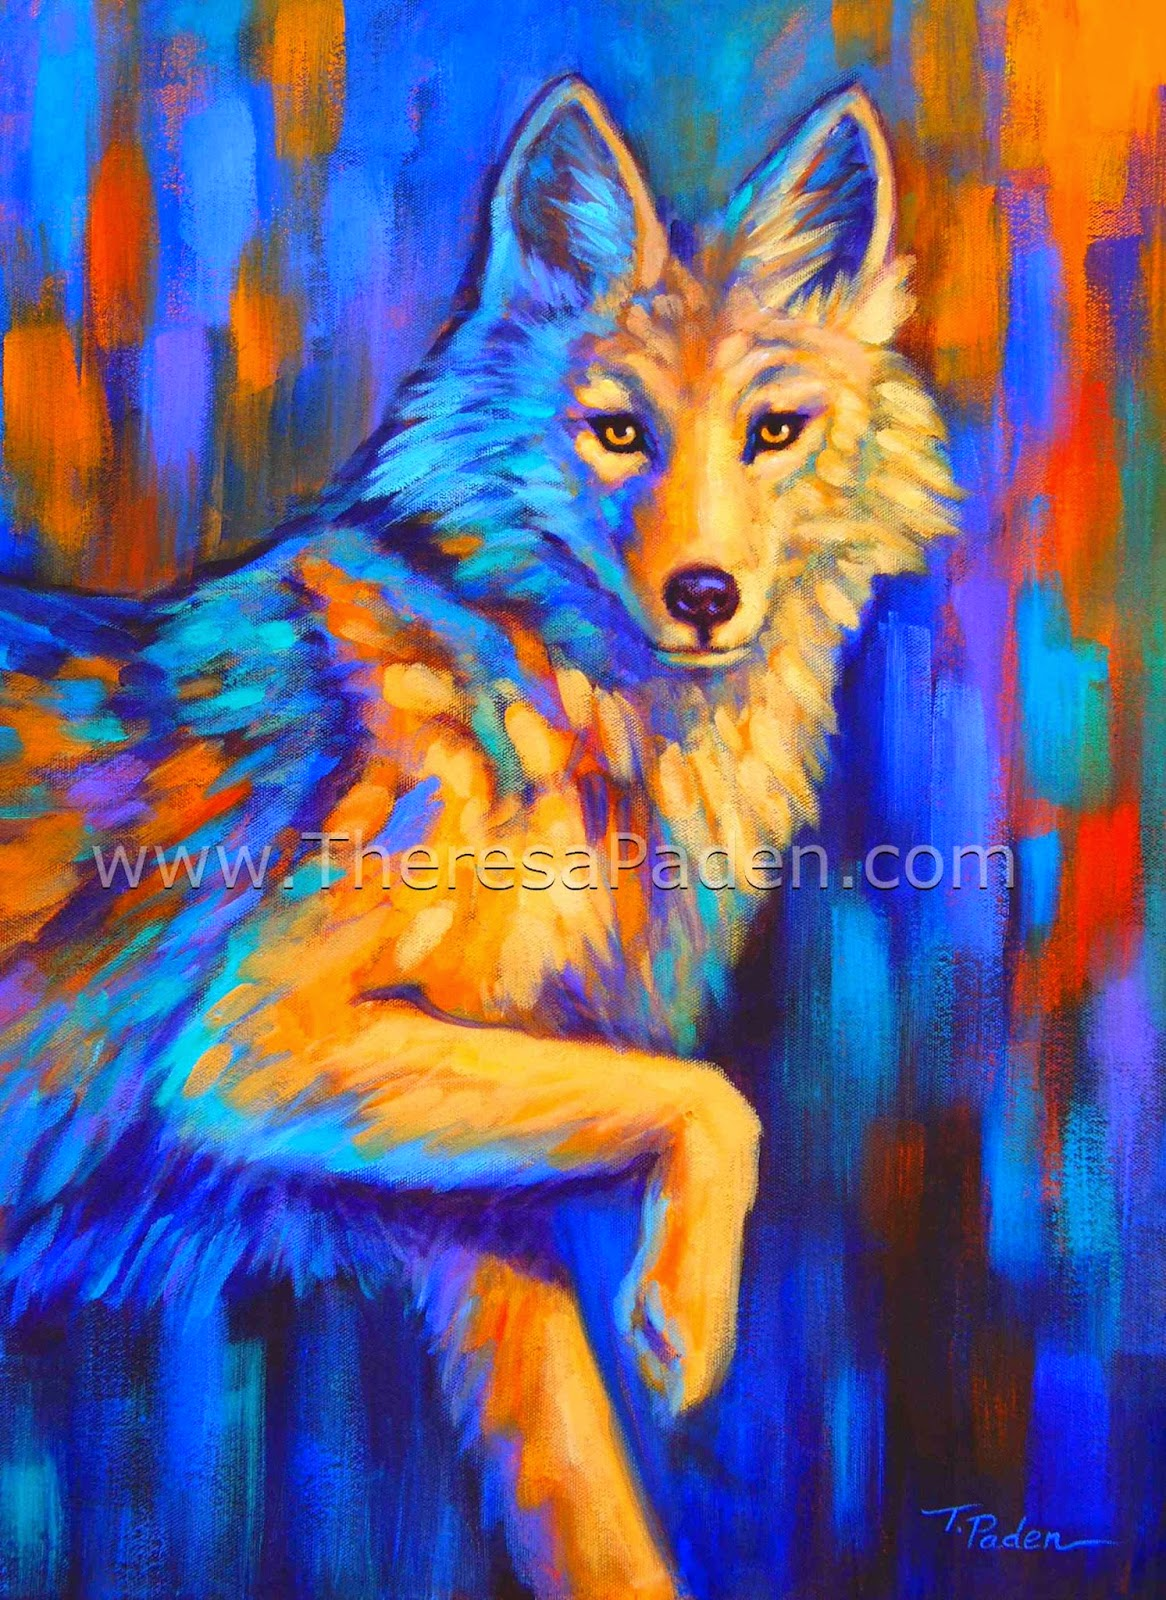 Paintings By Theresa Paden Colorful Contemporary Animal Paintings